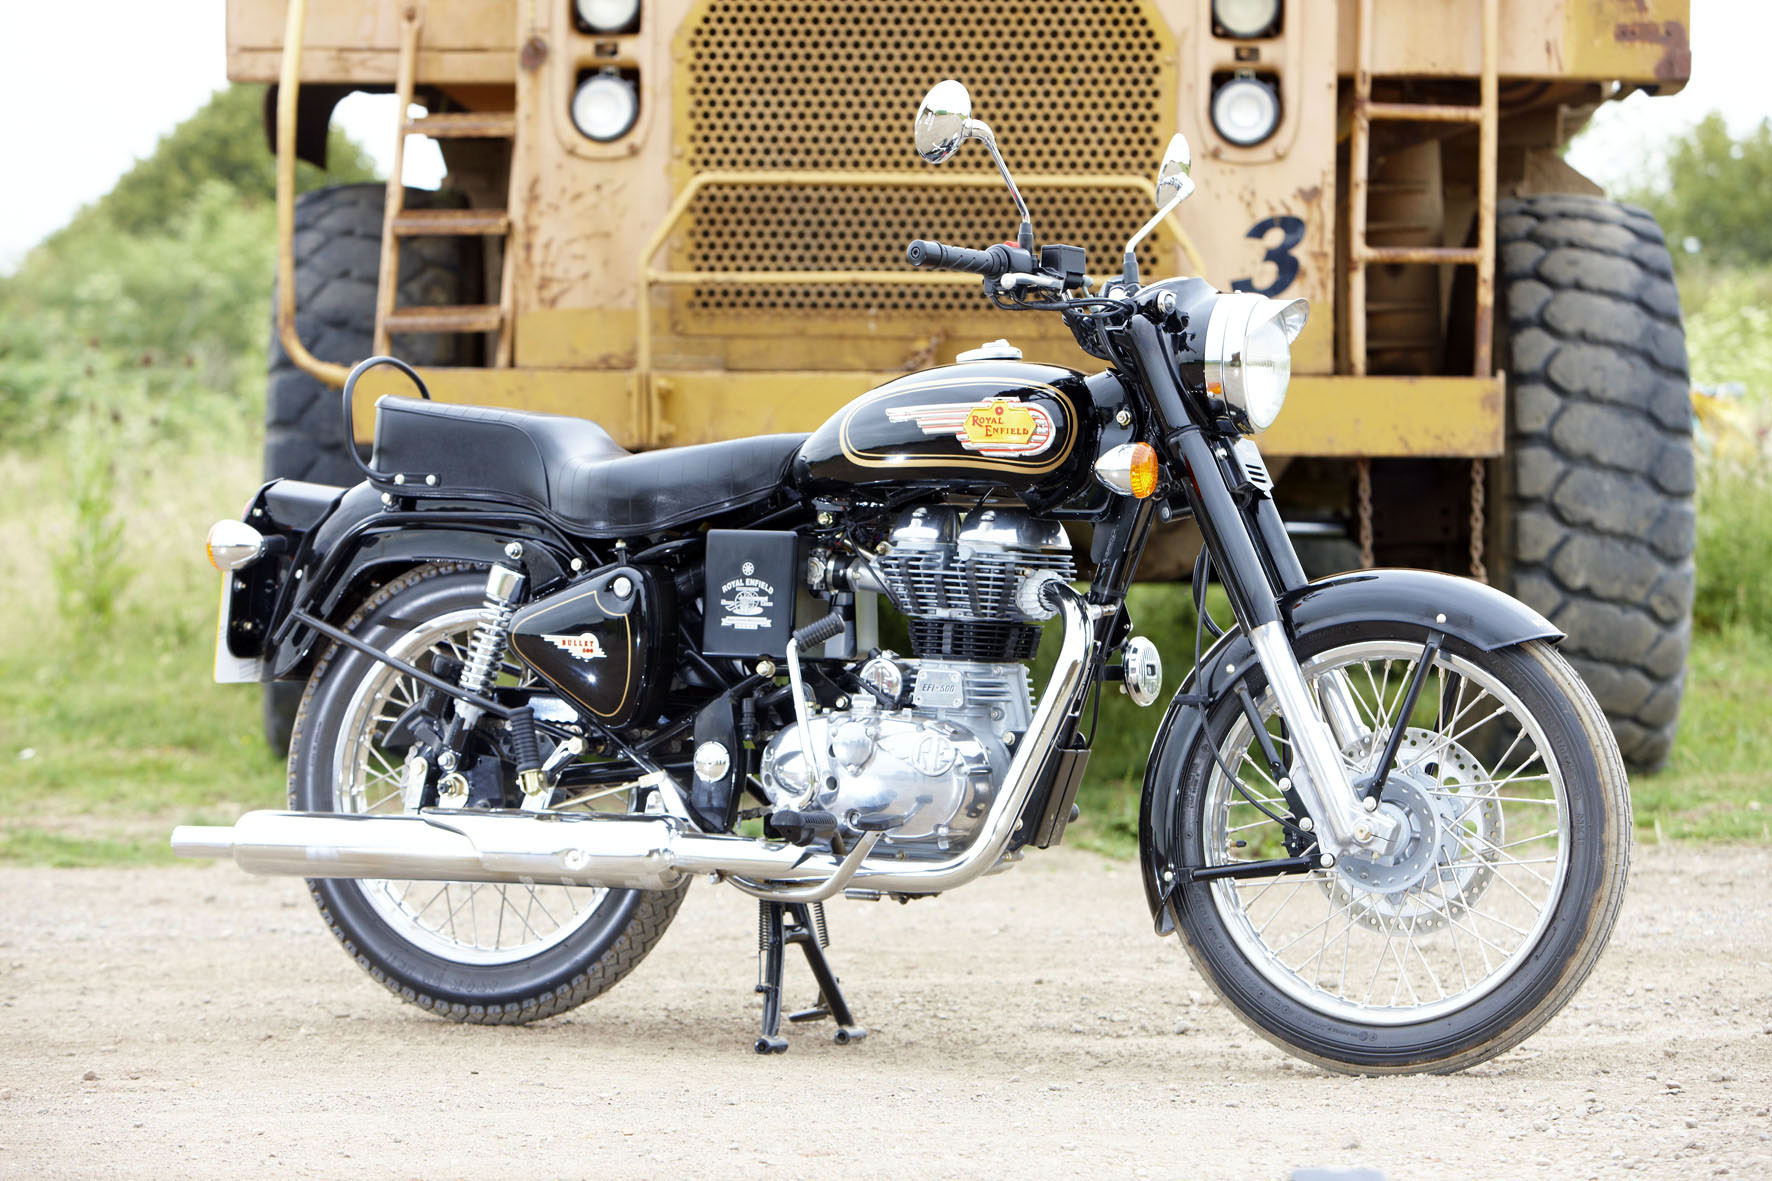 Royal Enfield Bullet 350 Army 1990 images #122691